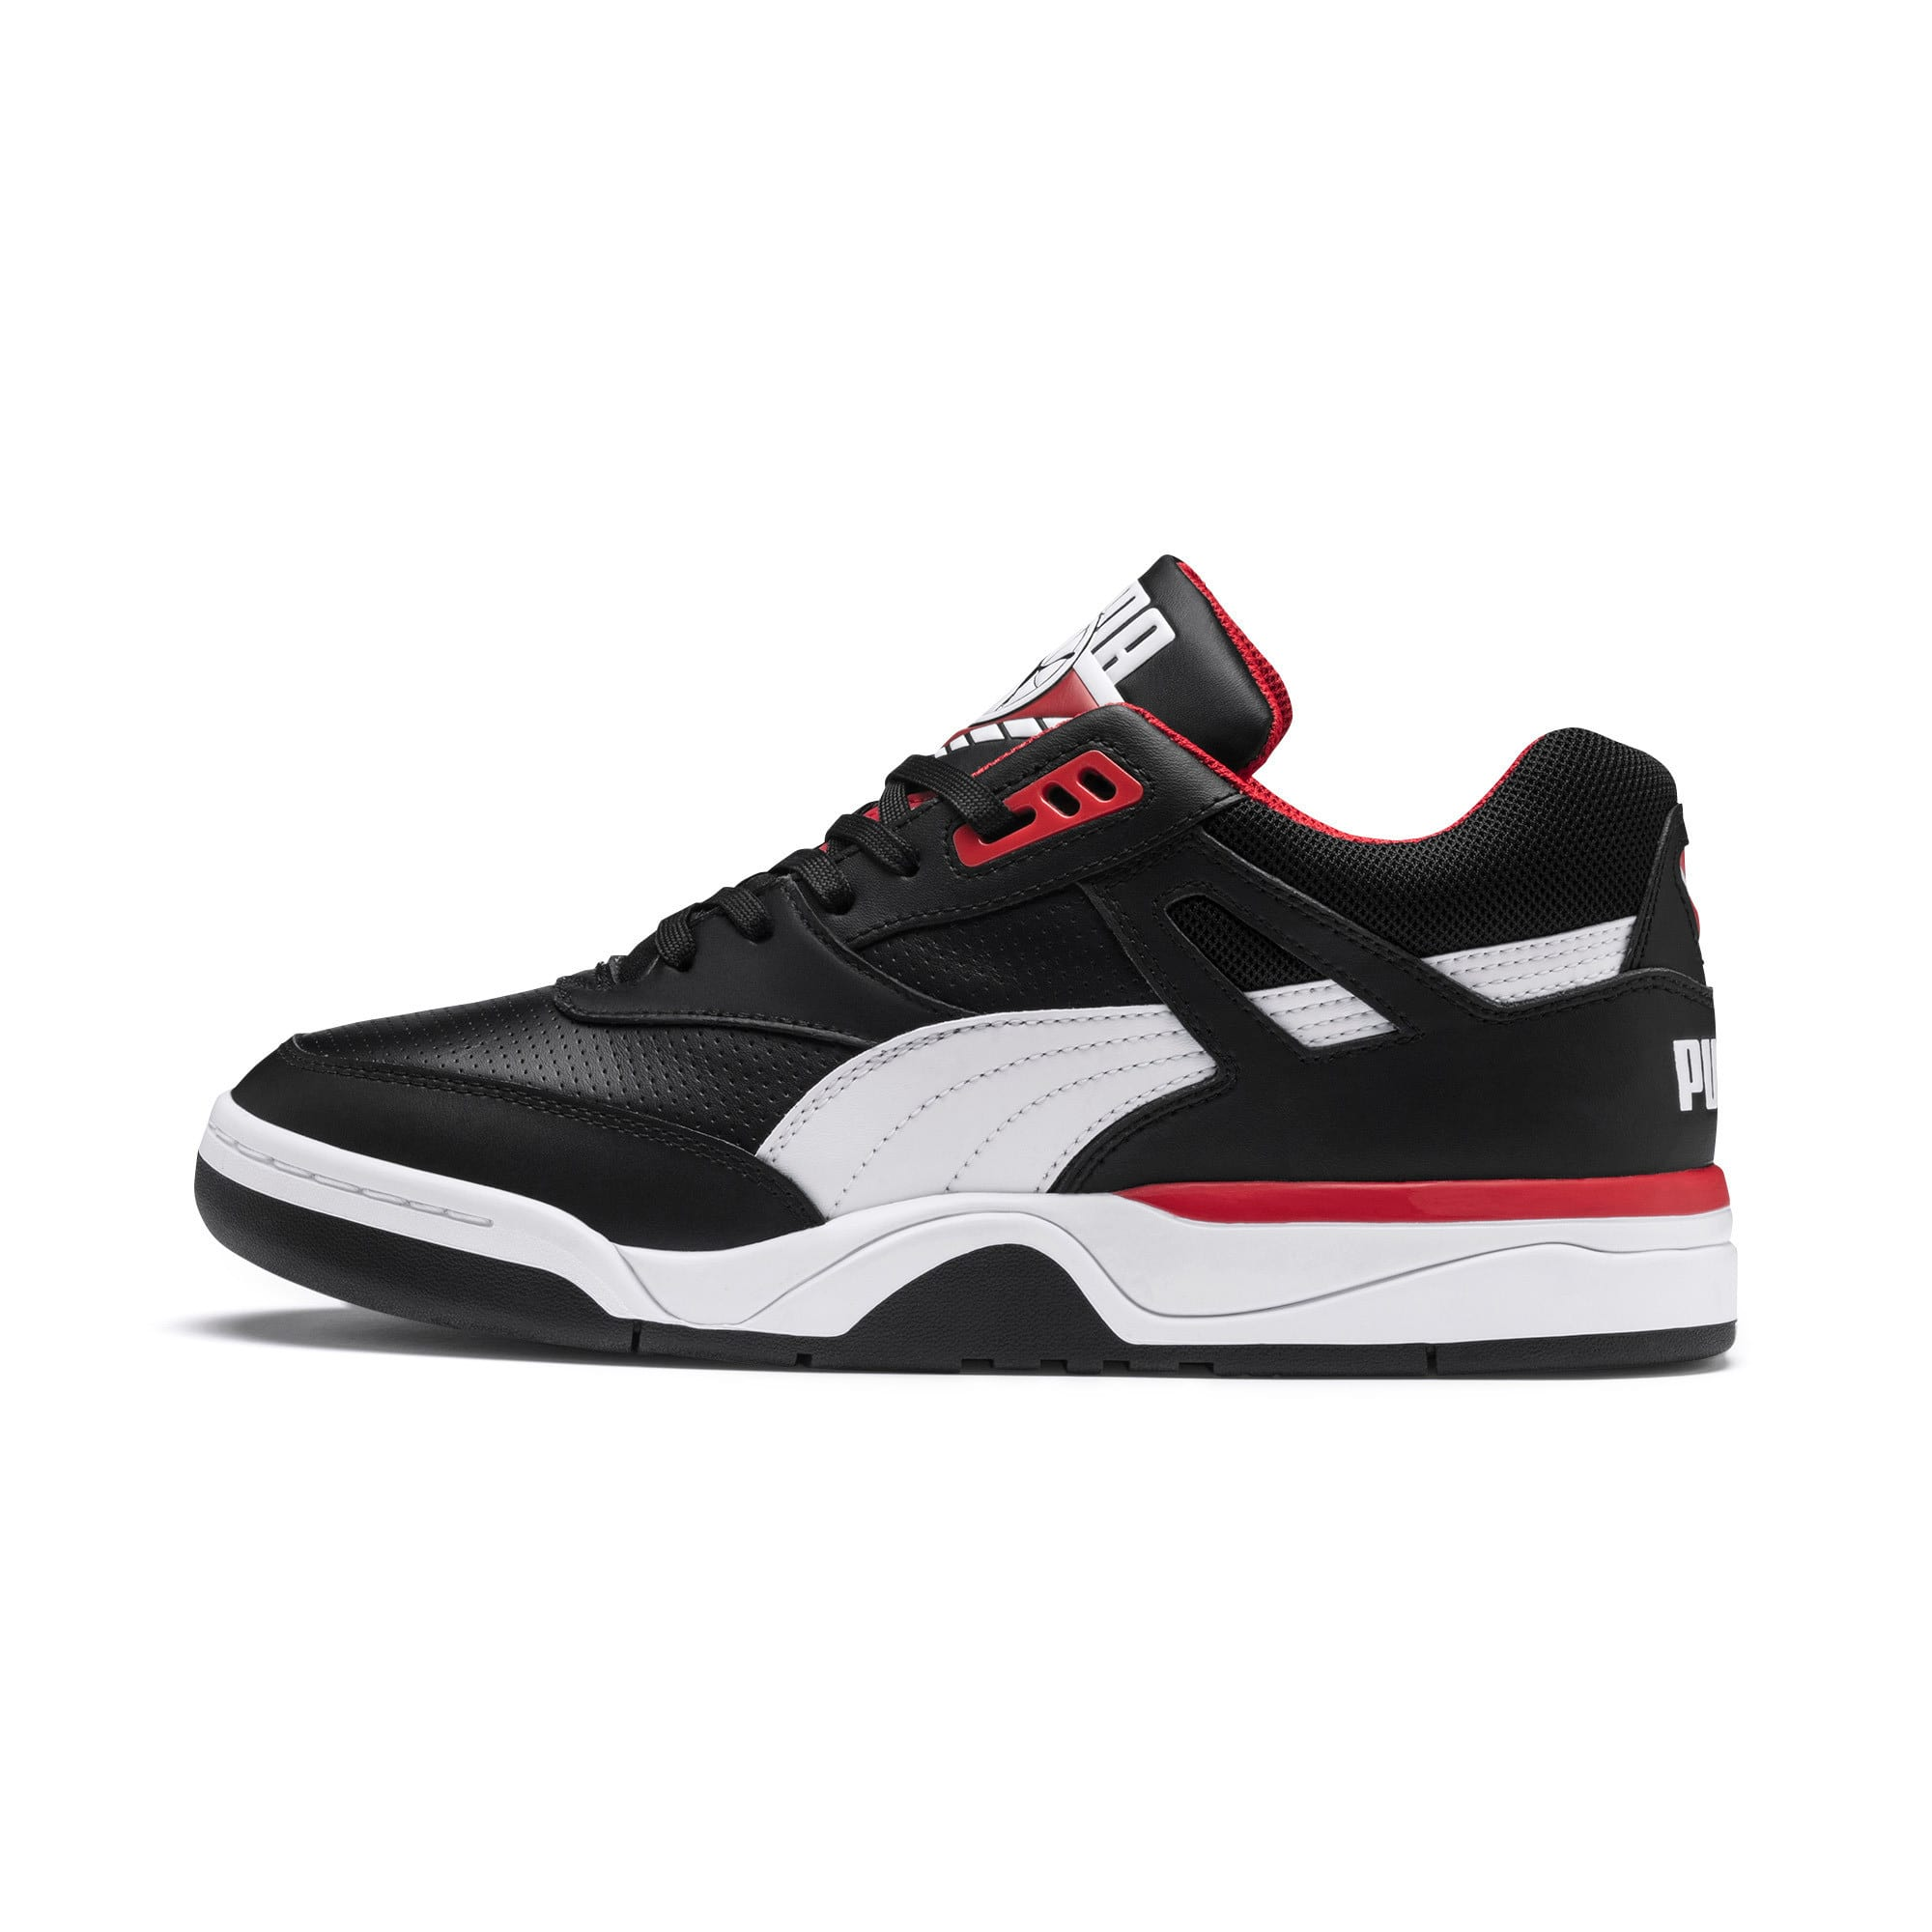 Thumbnail 1 of Palace Guard Men's Basketball Trainers, Puma Black-Puma White-red, medium